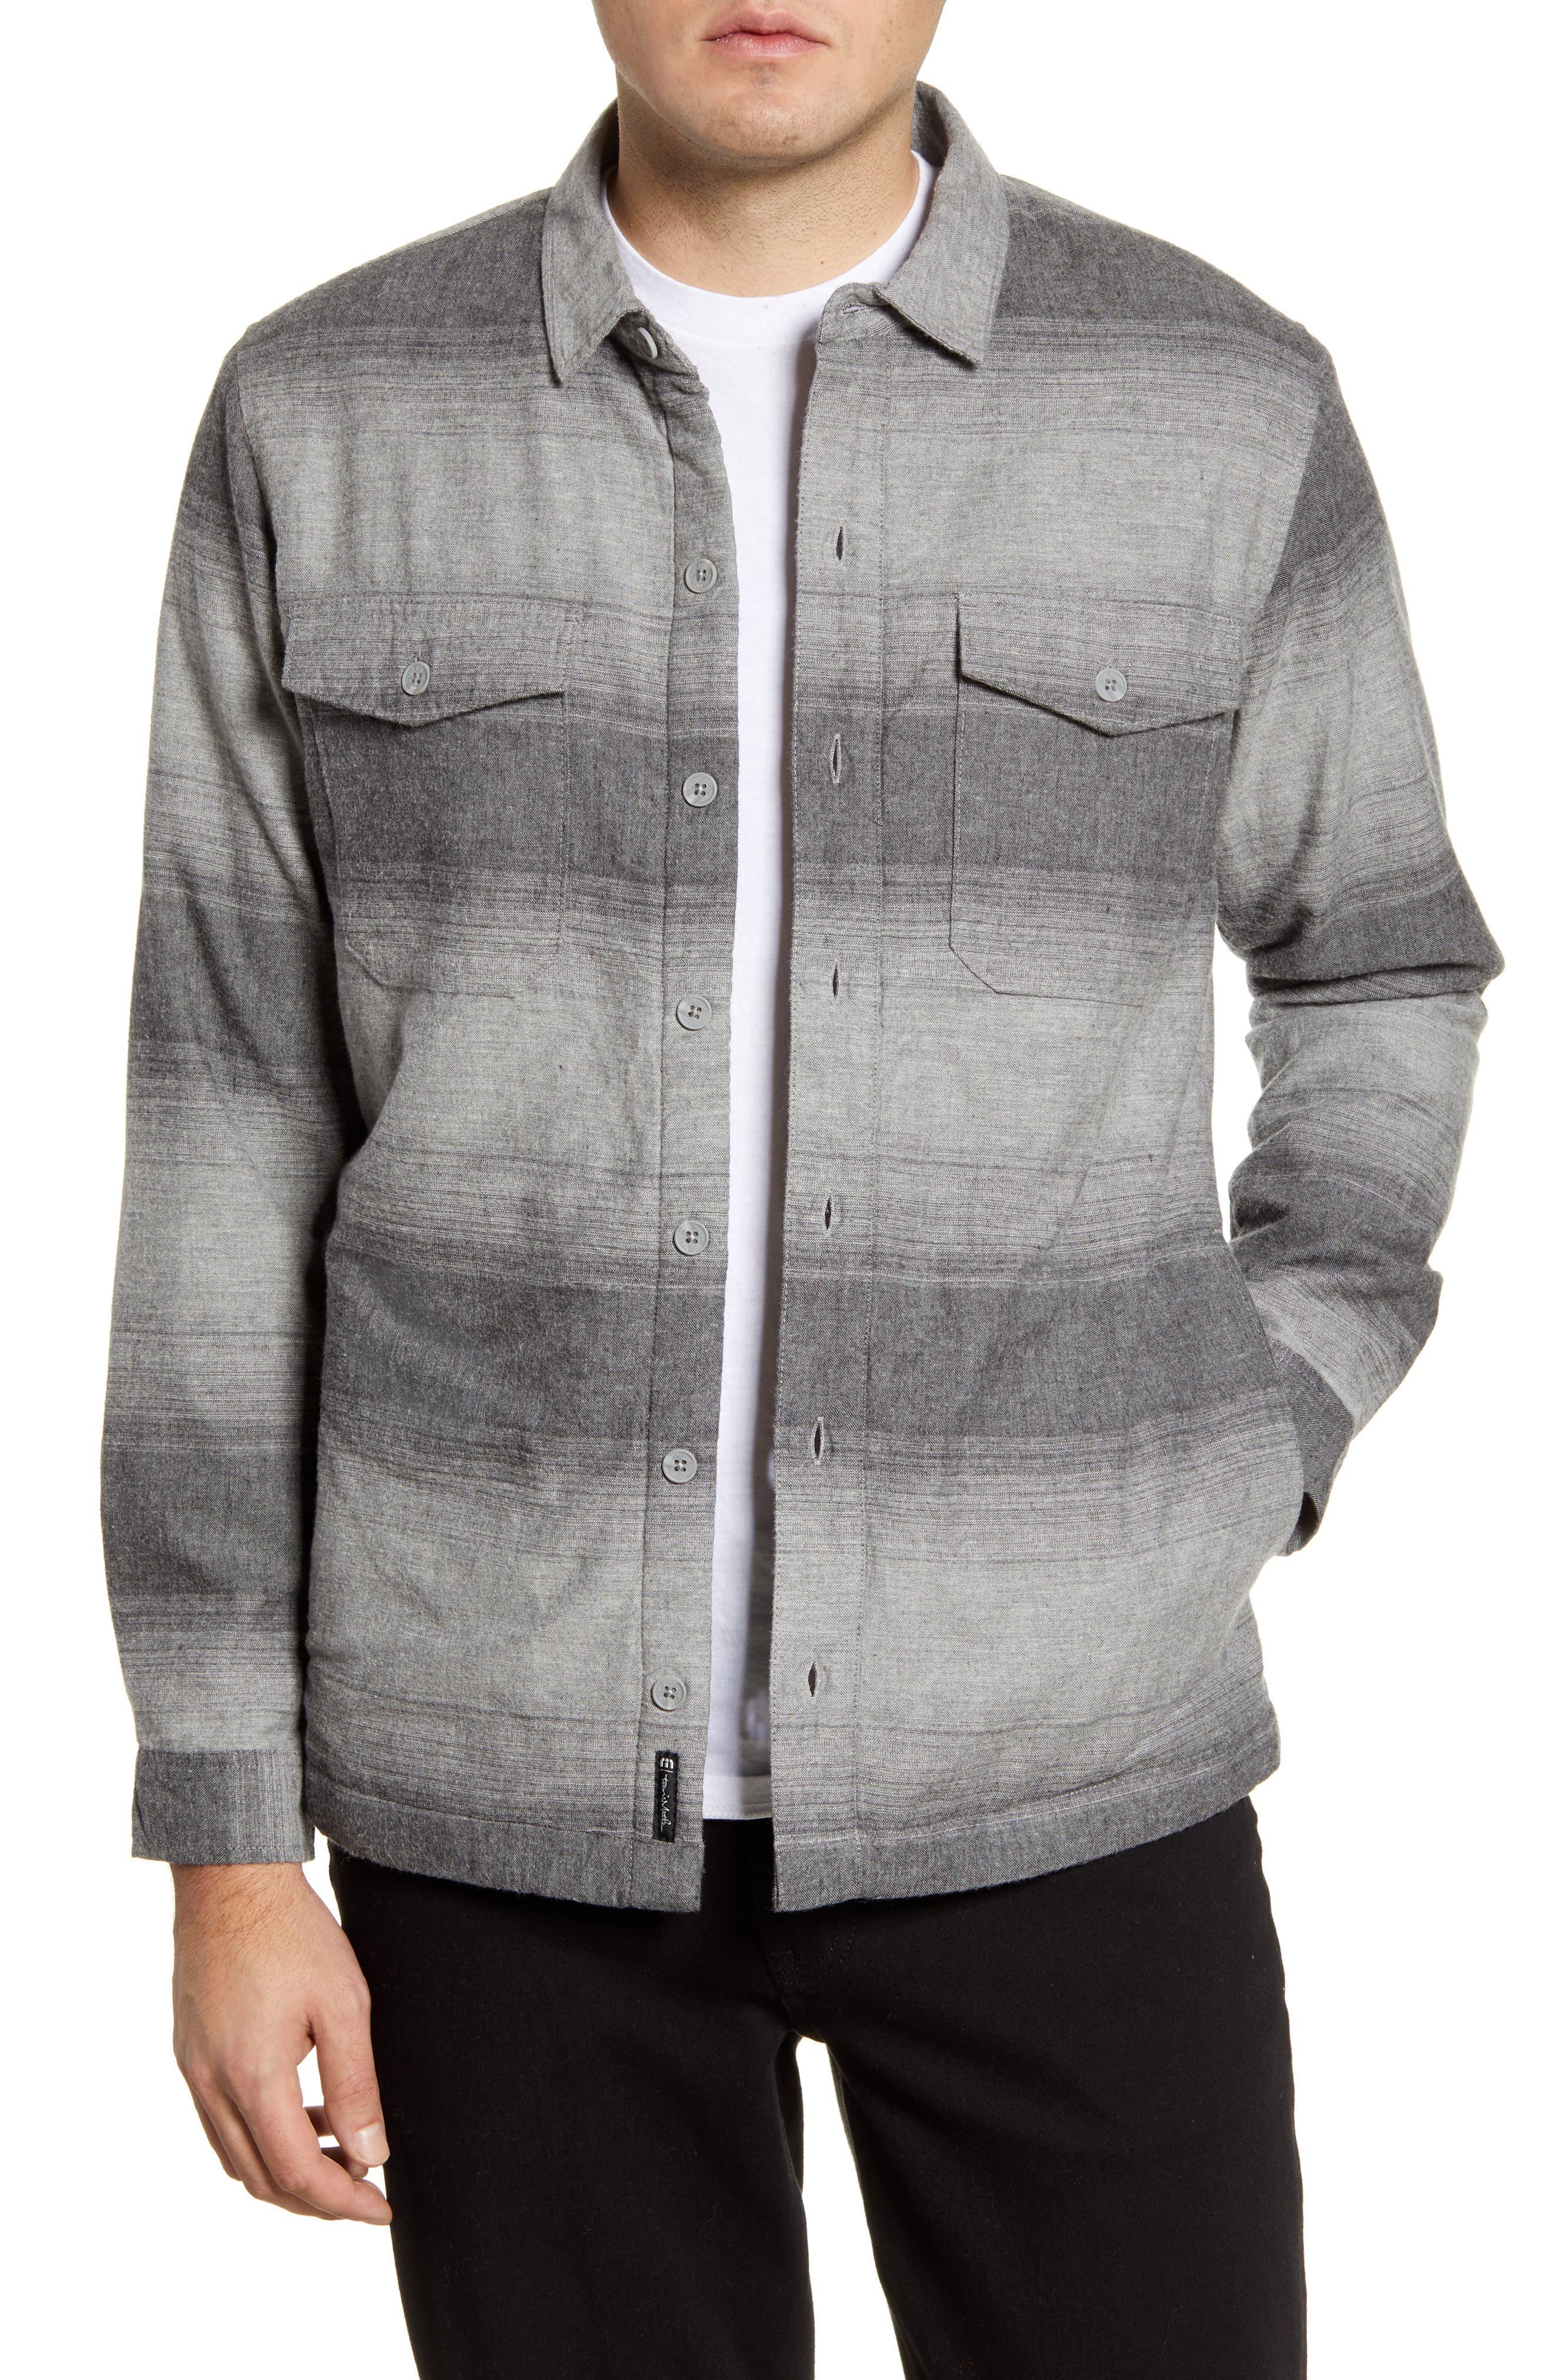 A fleece lining ensures superior warmth in a versatile shirt jacket built from a durable cotton blend. Style Name: Travismathew Towner Regular Fit Cotton Blend Shirt Jacket. Style Number: 5930049. Available in stores.